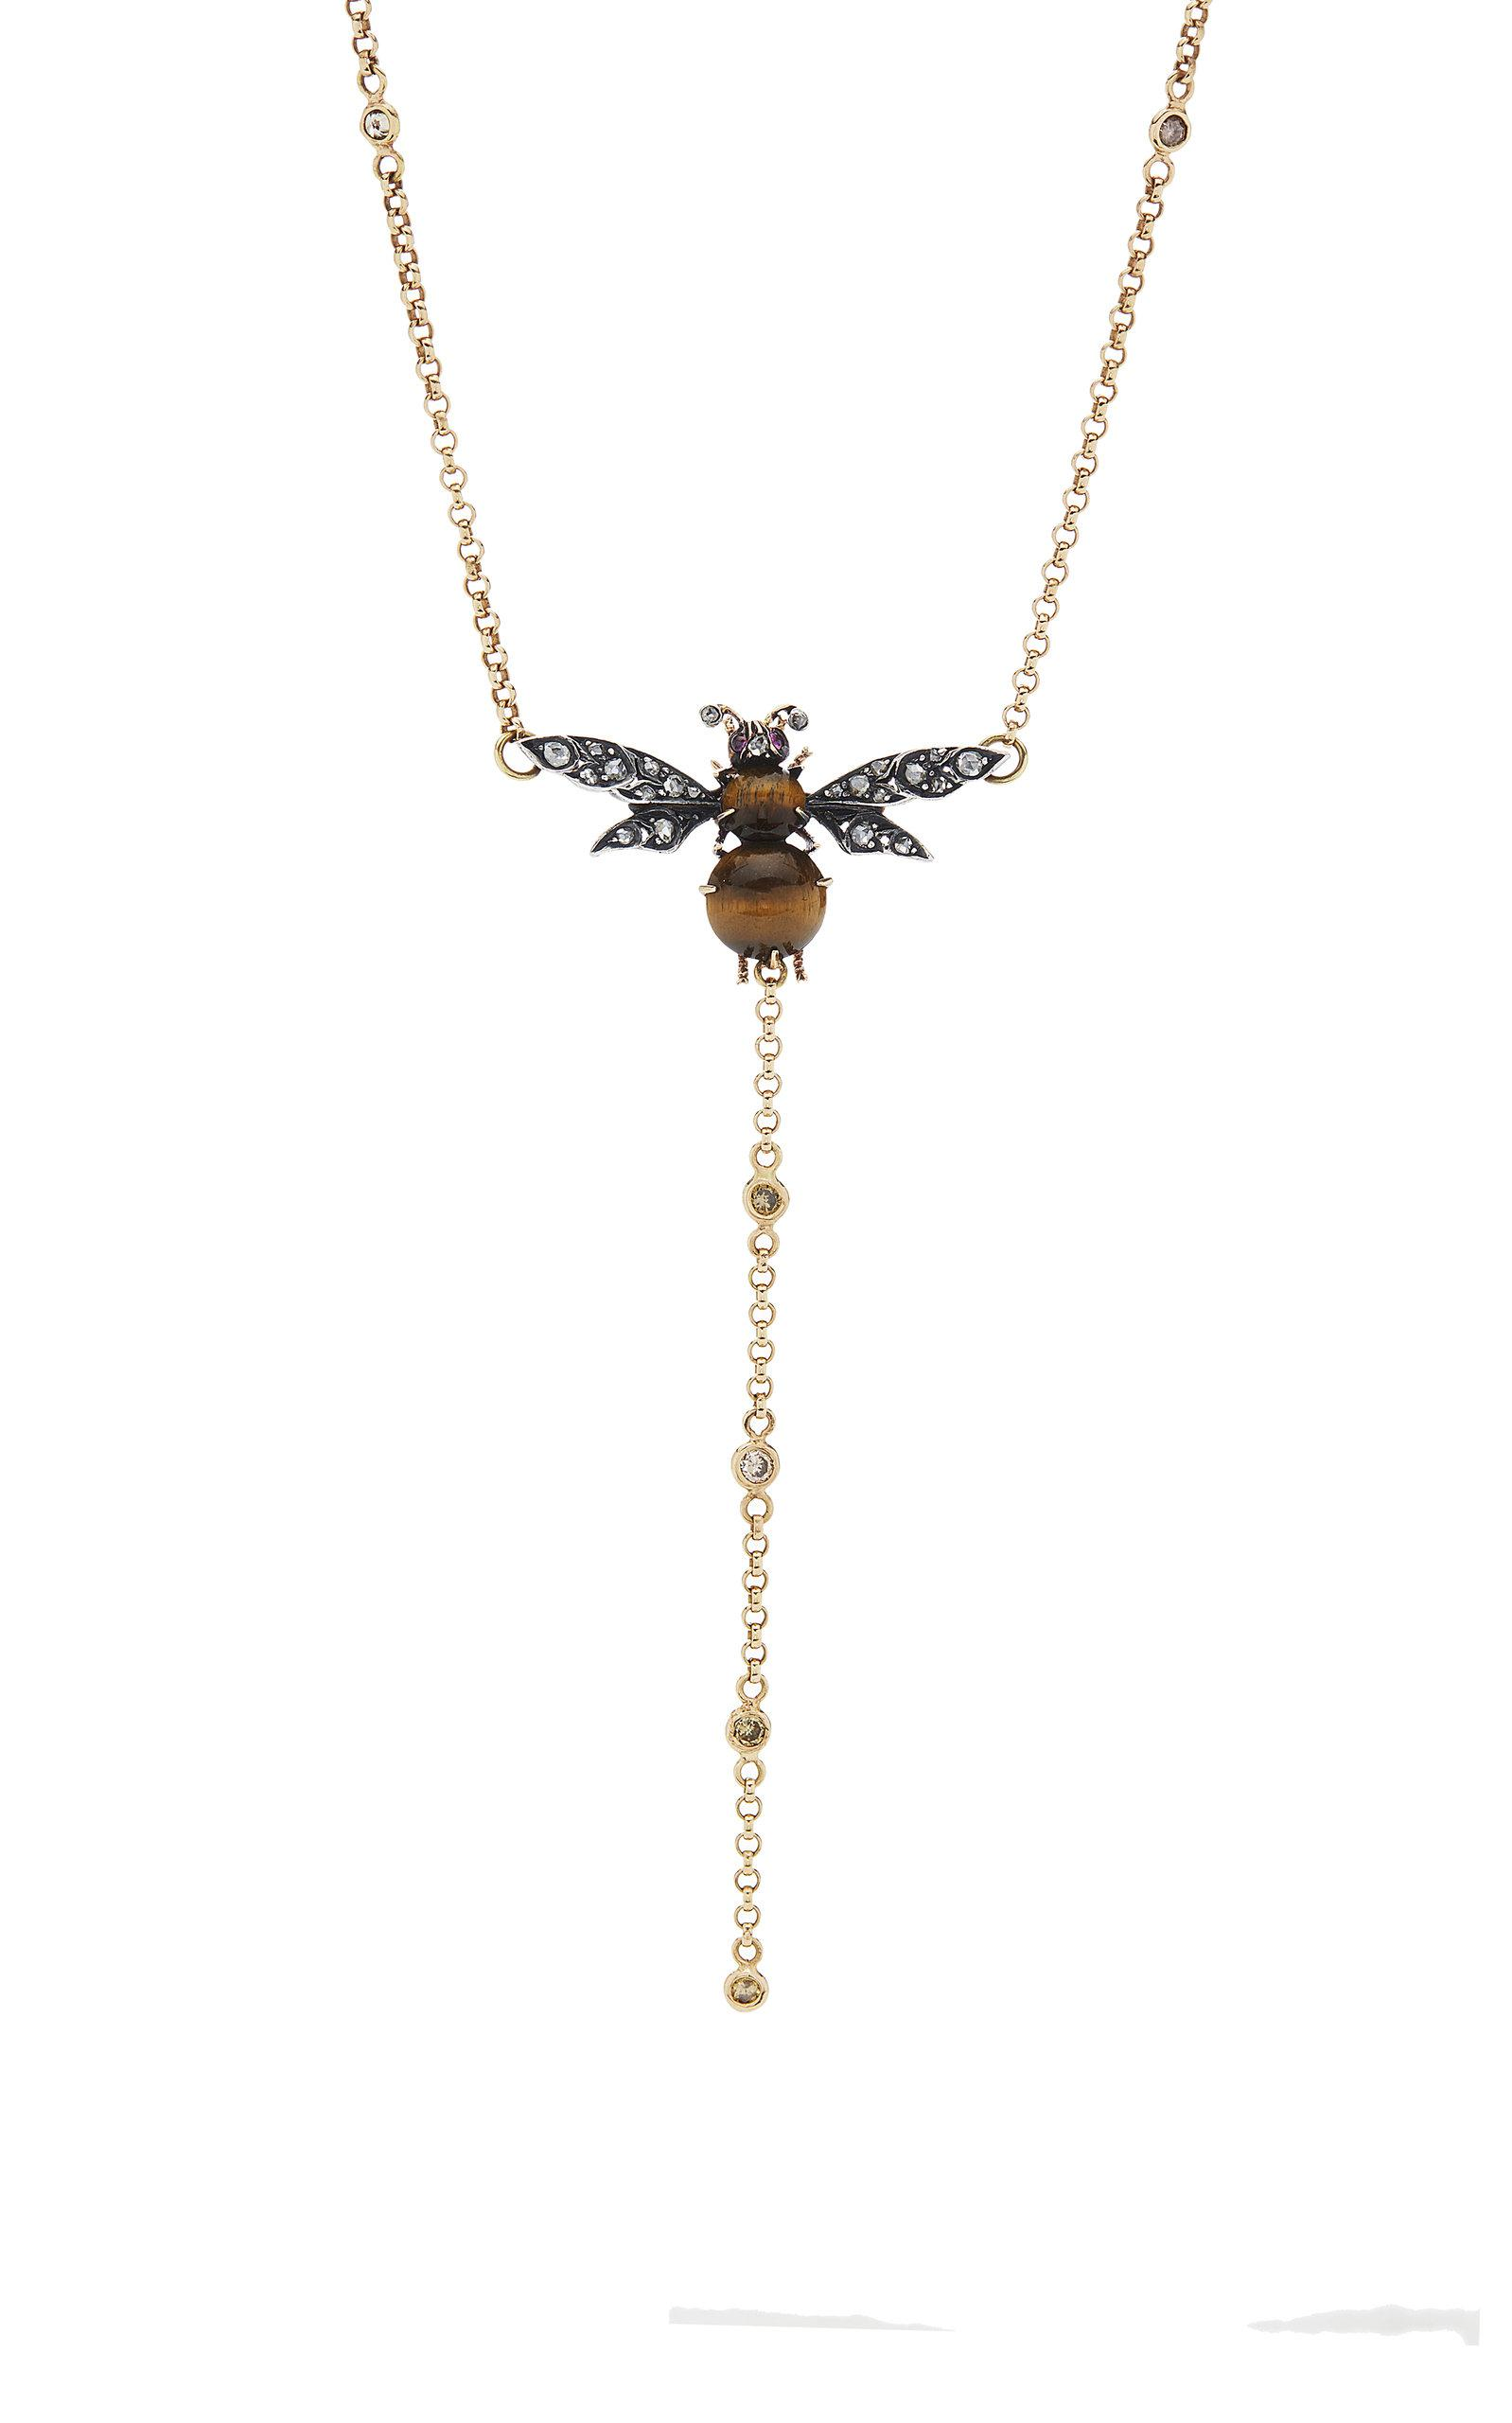 Mo Exclusif: One-of-a-kind Collier Abeille Sylvie Corbelin hFzLlUDN